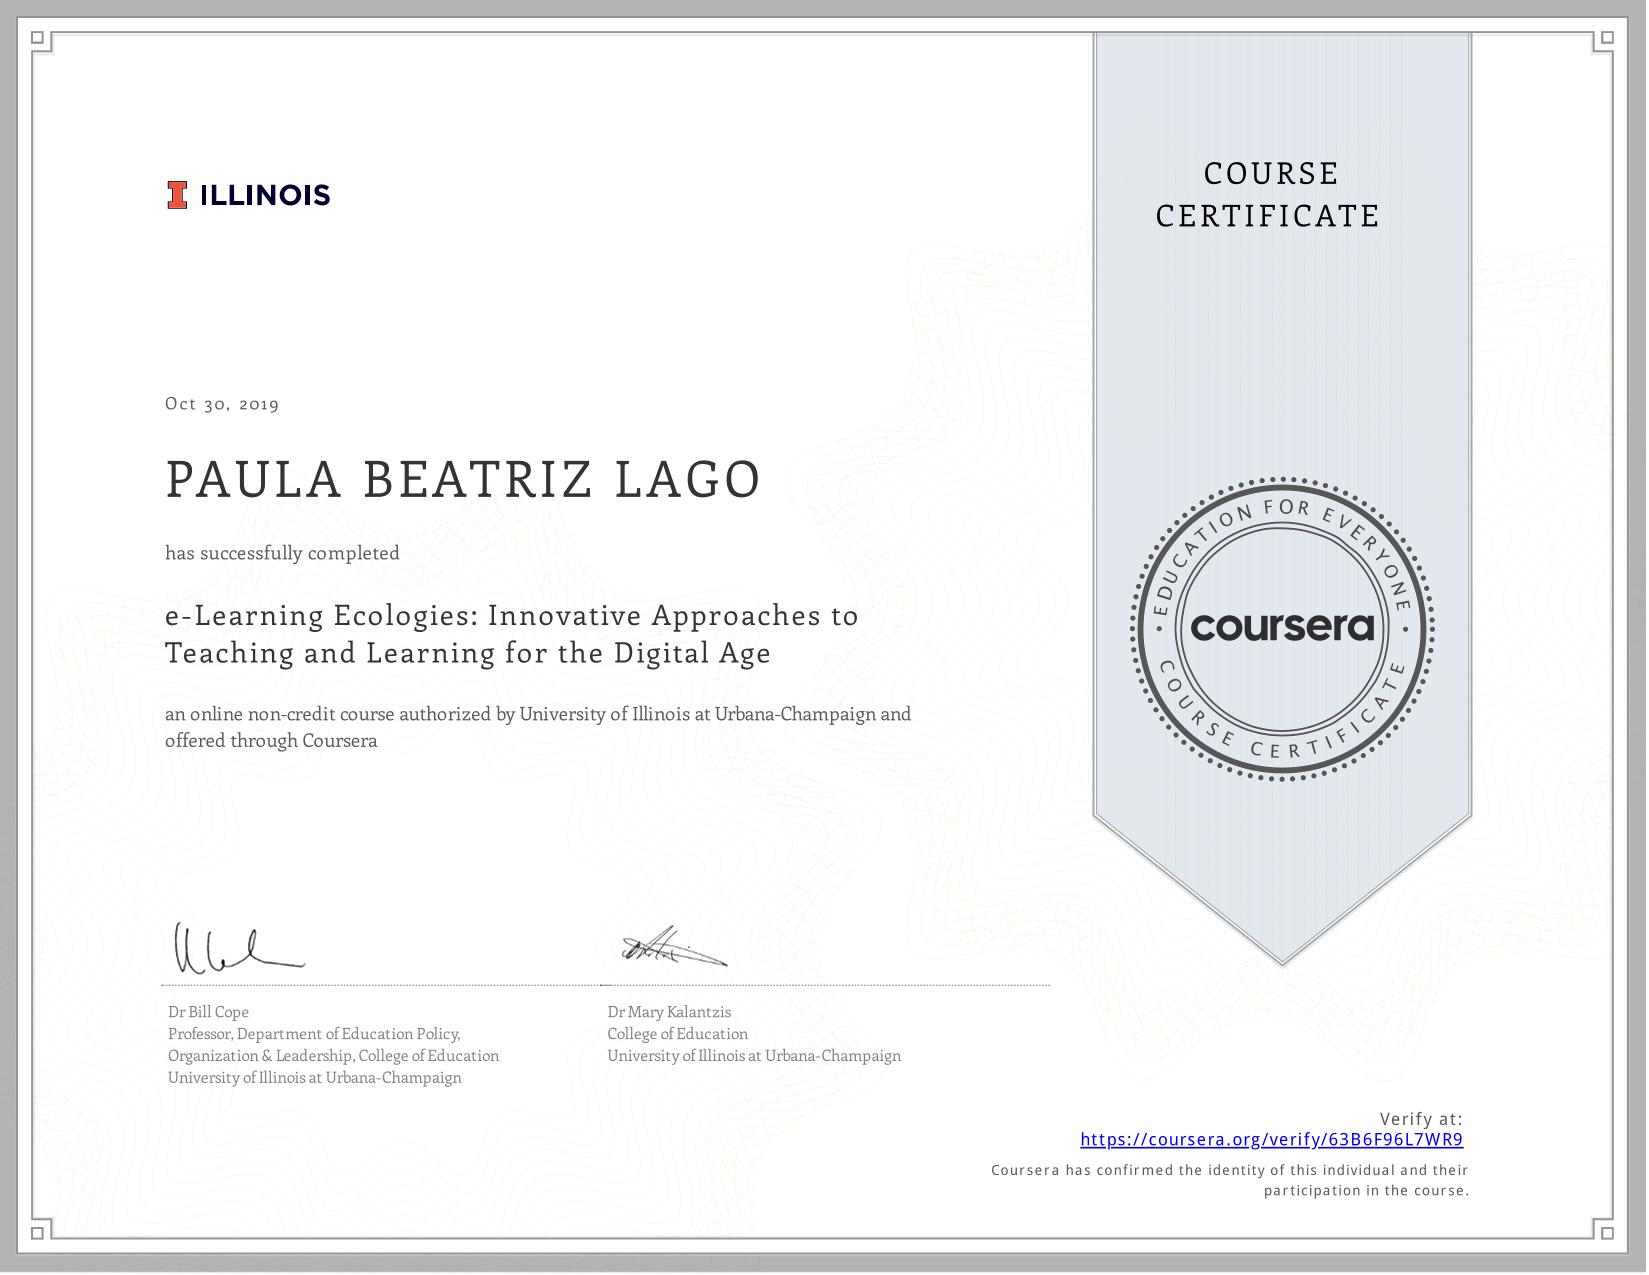 View certificate for PAULA BEATRIZ  LAGO, e-Learning Ecologies: Innovative Approaches to Teaching and Learning for the Digital Age, an online non-credit course authorized by University of Illinois at Urbana-Champaign and offered through Coursera